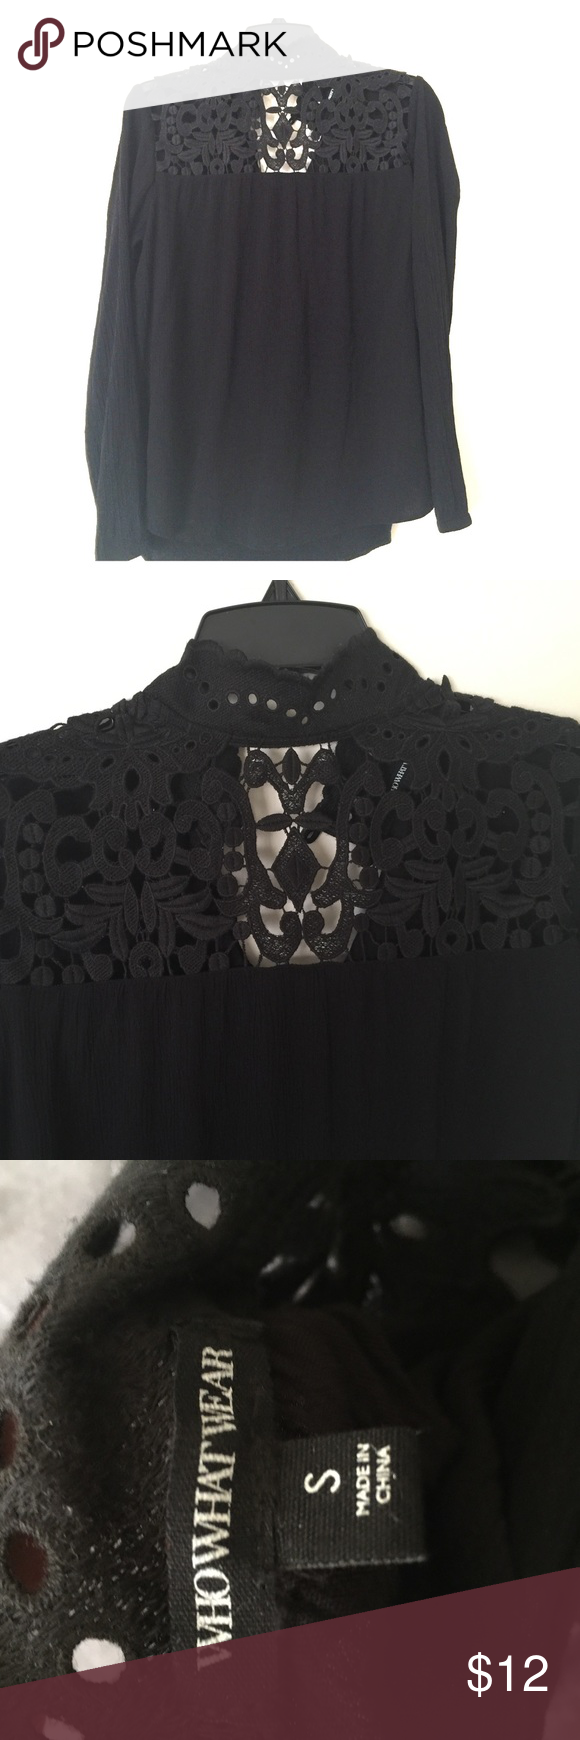 Beautiful Black Top Really pretty crochet cut out Top! Goes great with anything. whowhatwear Tops Blouses